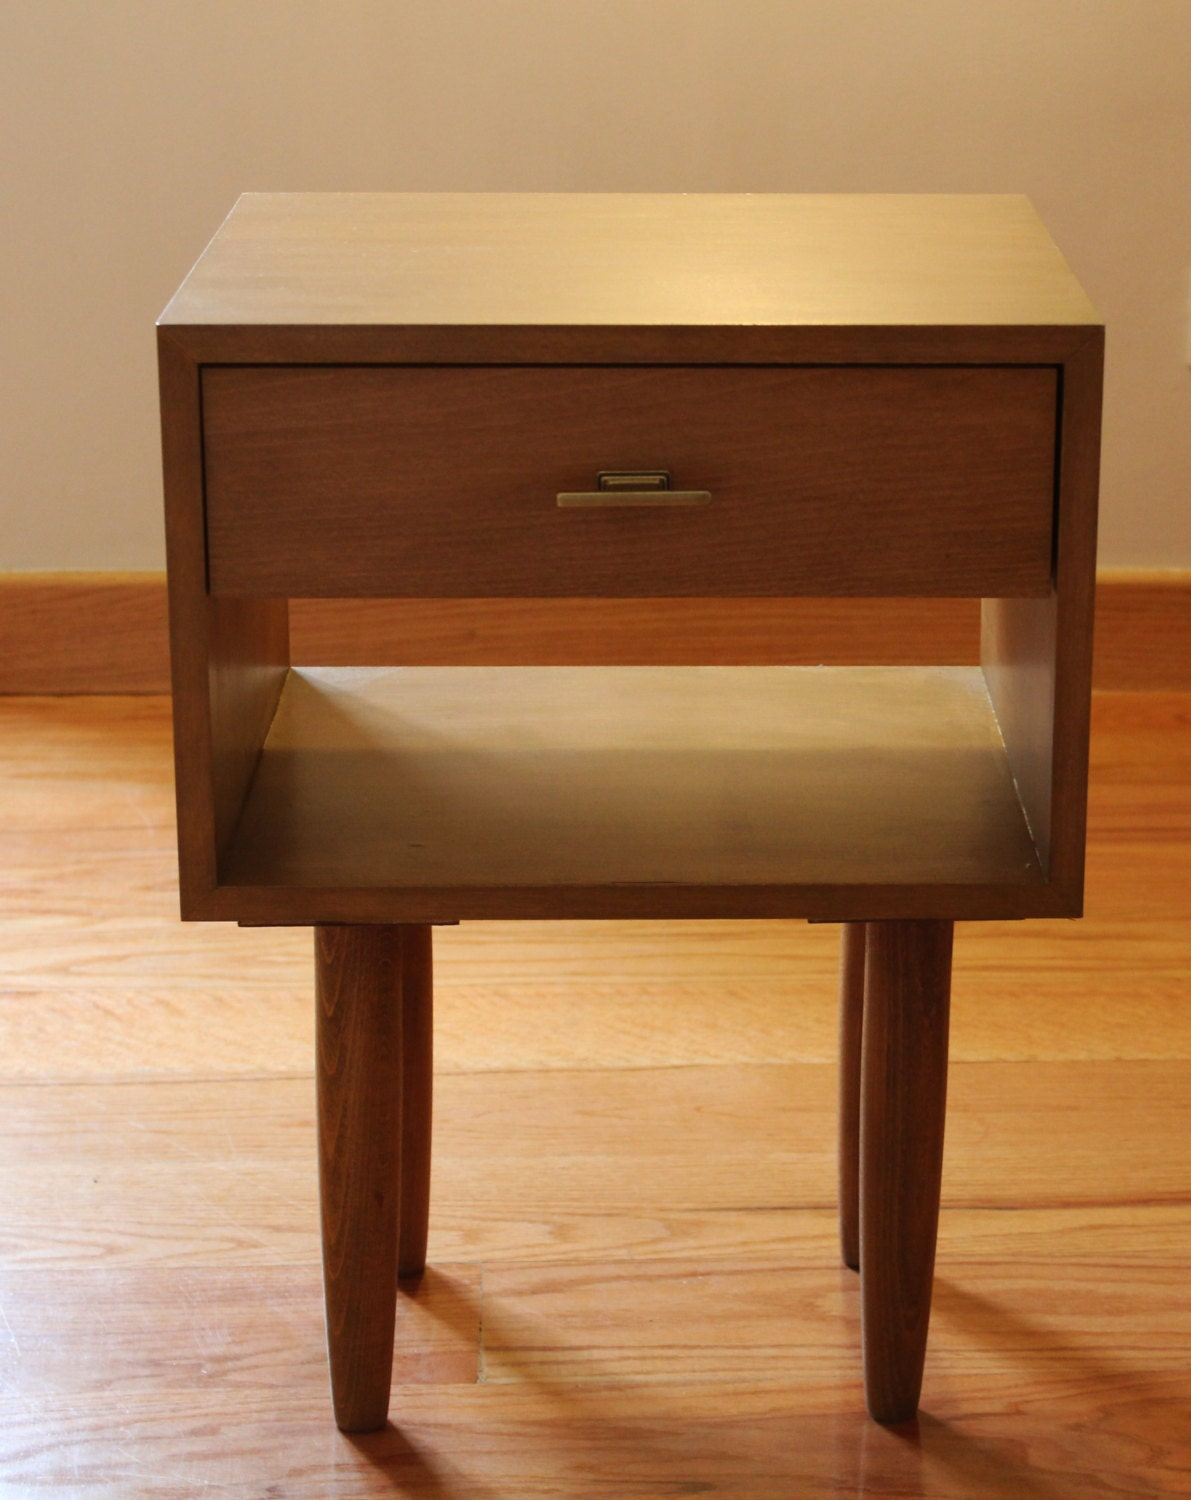 Vintage bedside table ideas - Mid Century Nightstand Bedside Table Scandinavian Design Custom Made Handmade